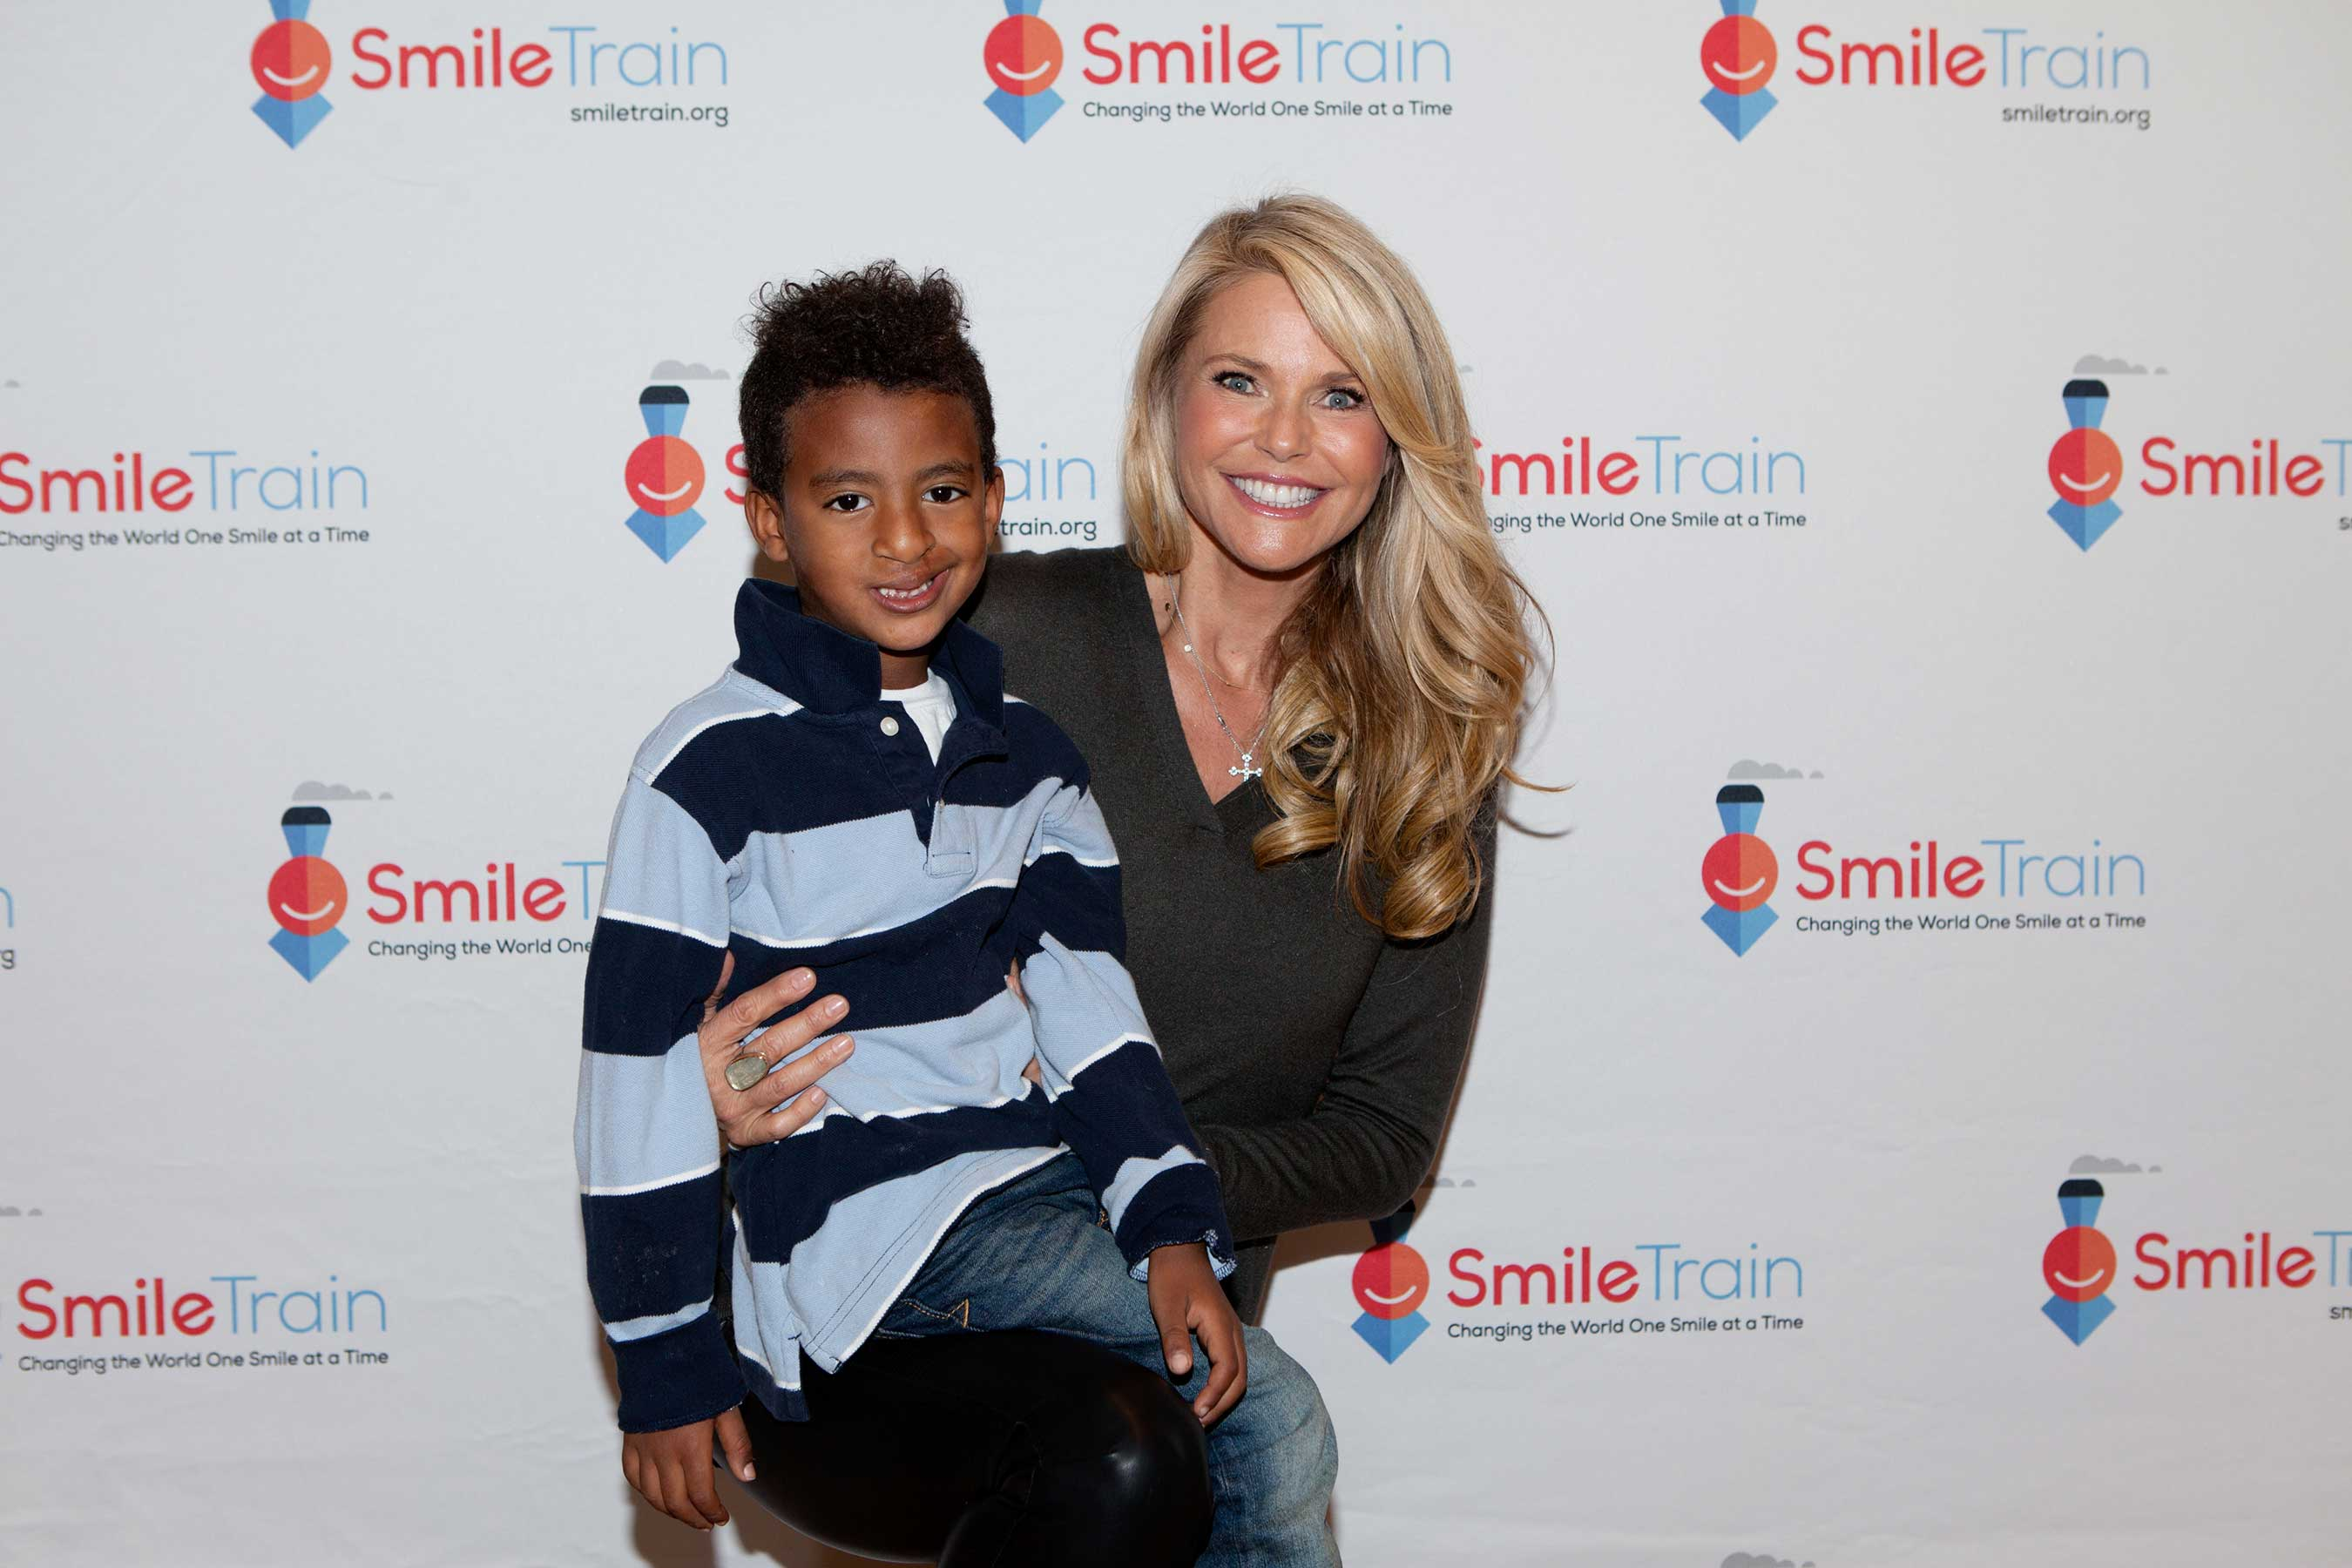 Christie Brinkley shows off her best smile with 5-year-old Zachary, a Smile Train cleft patient.